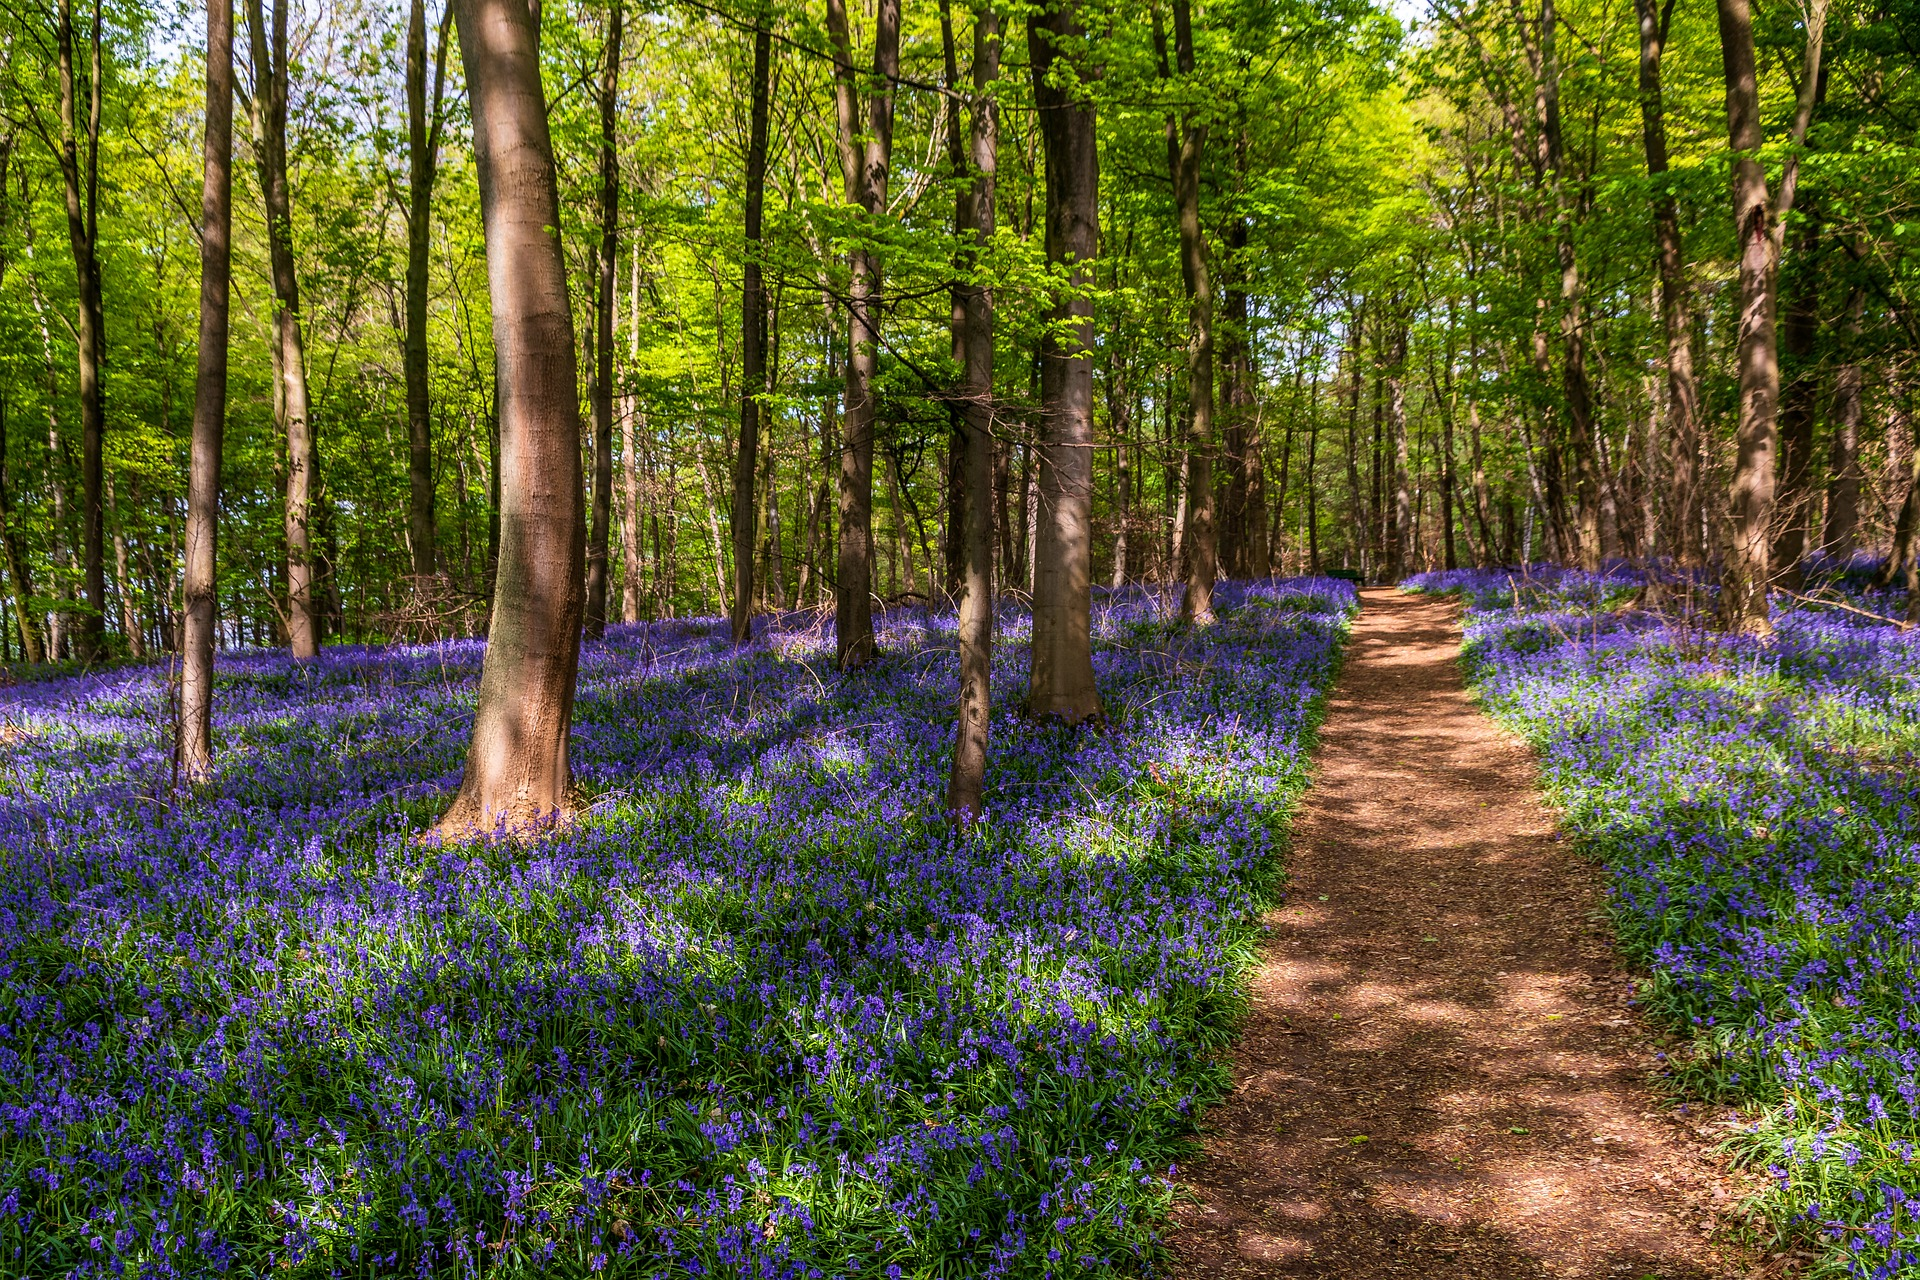 Bluebells are usually an indicator of ancient woodland and predominantly bloom in May